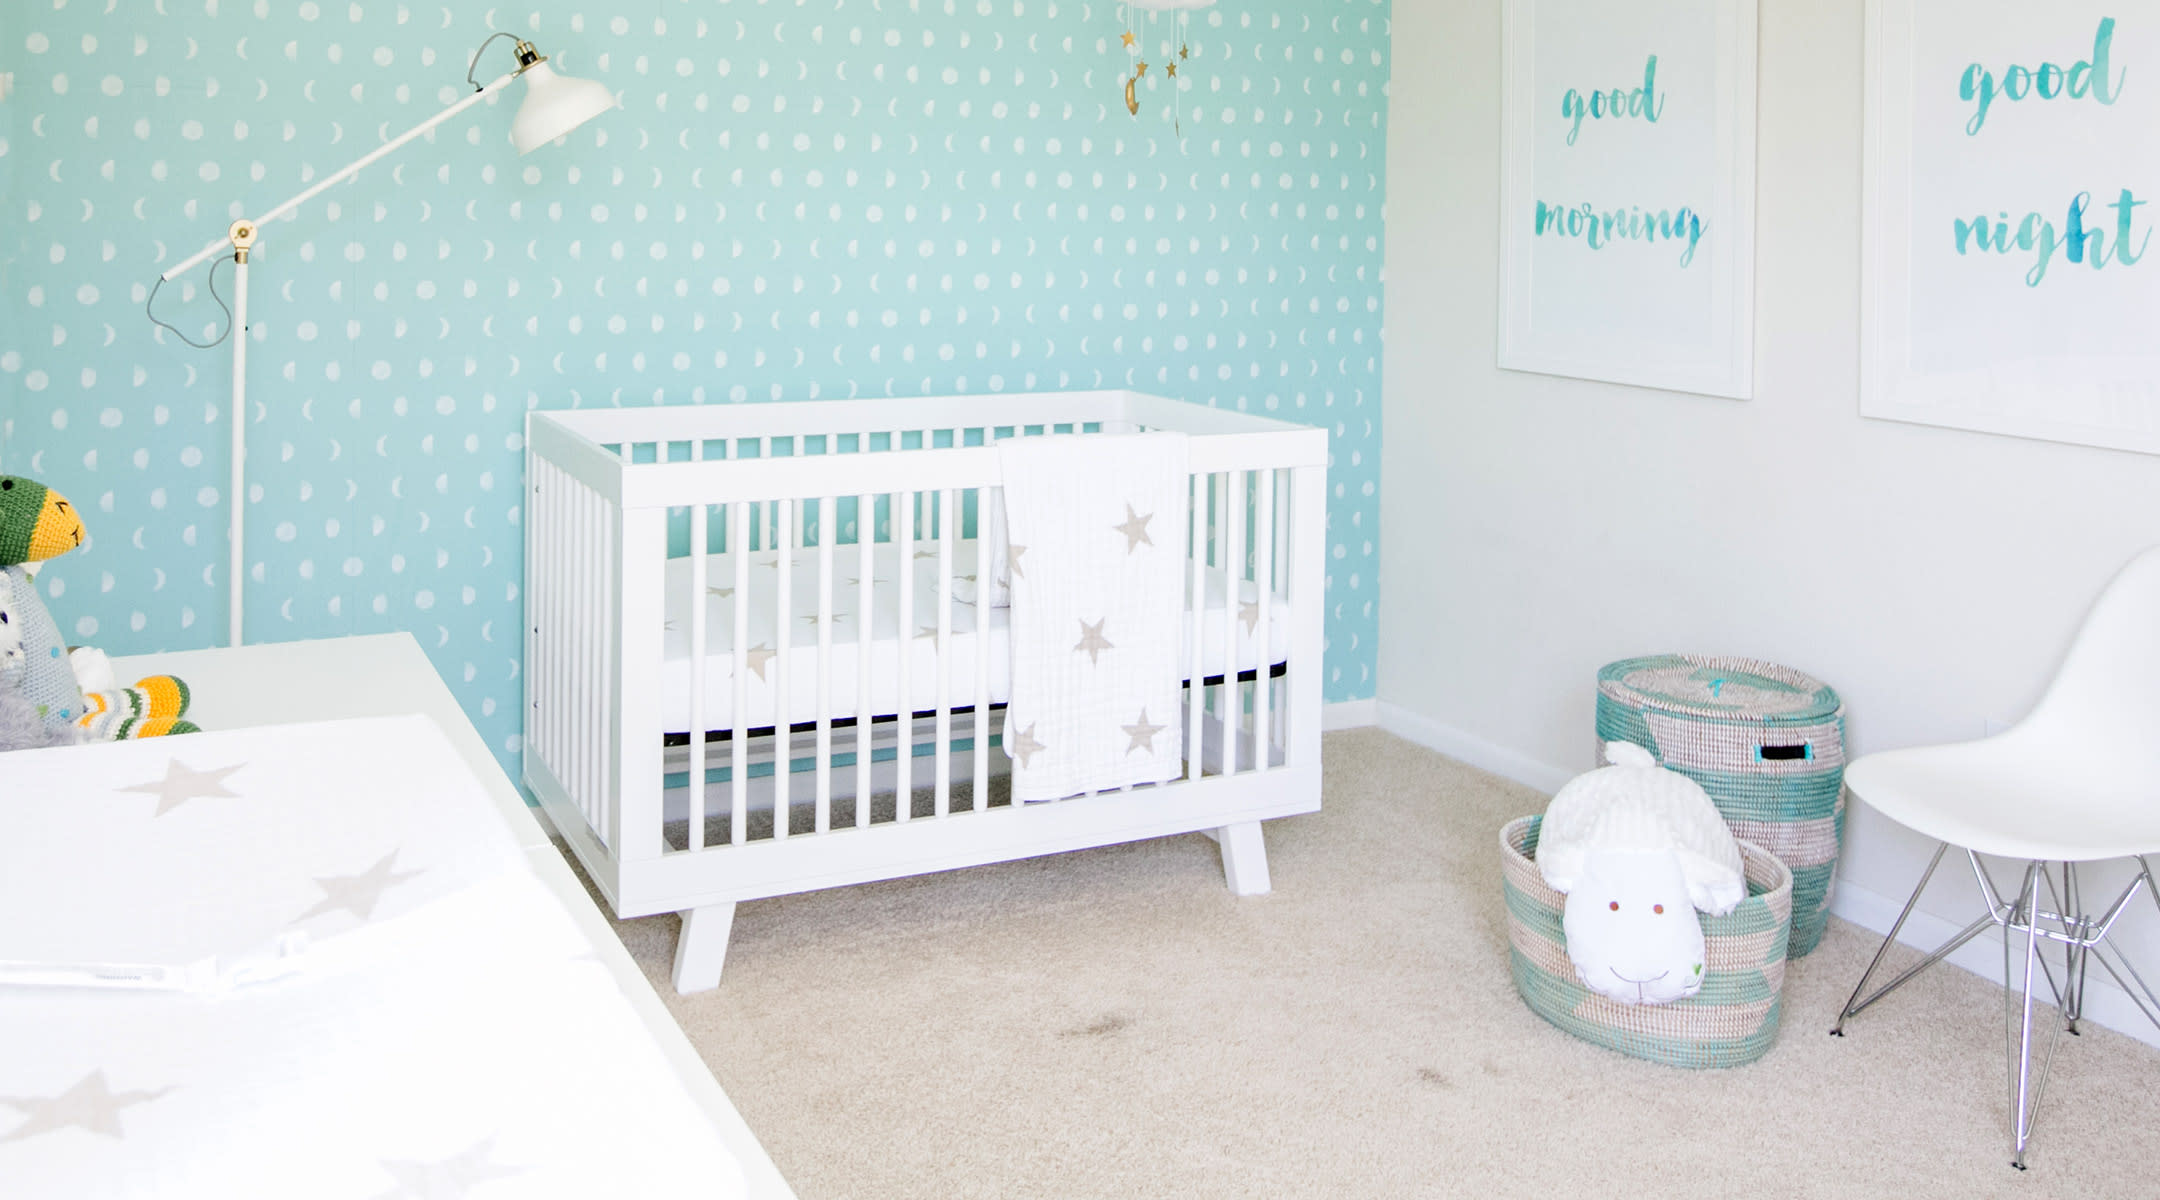 Connie Wong's baby nursery tour